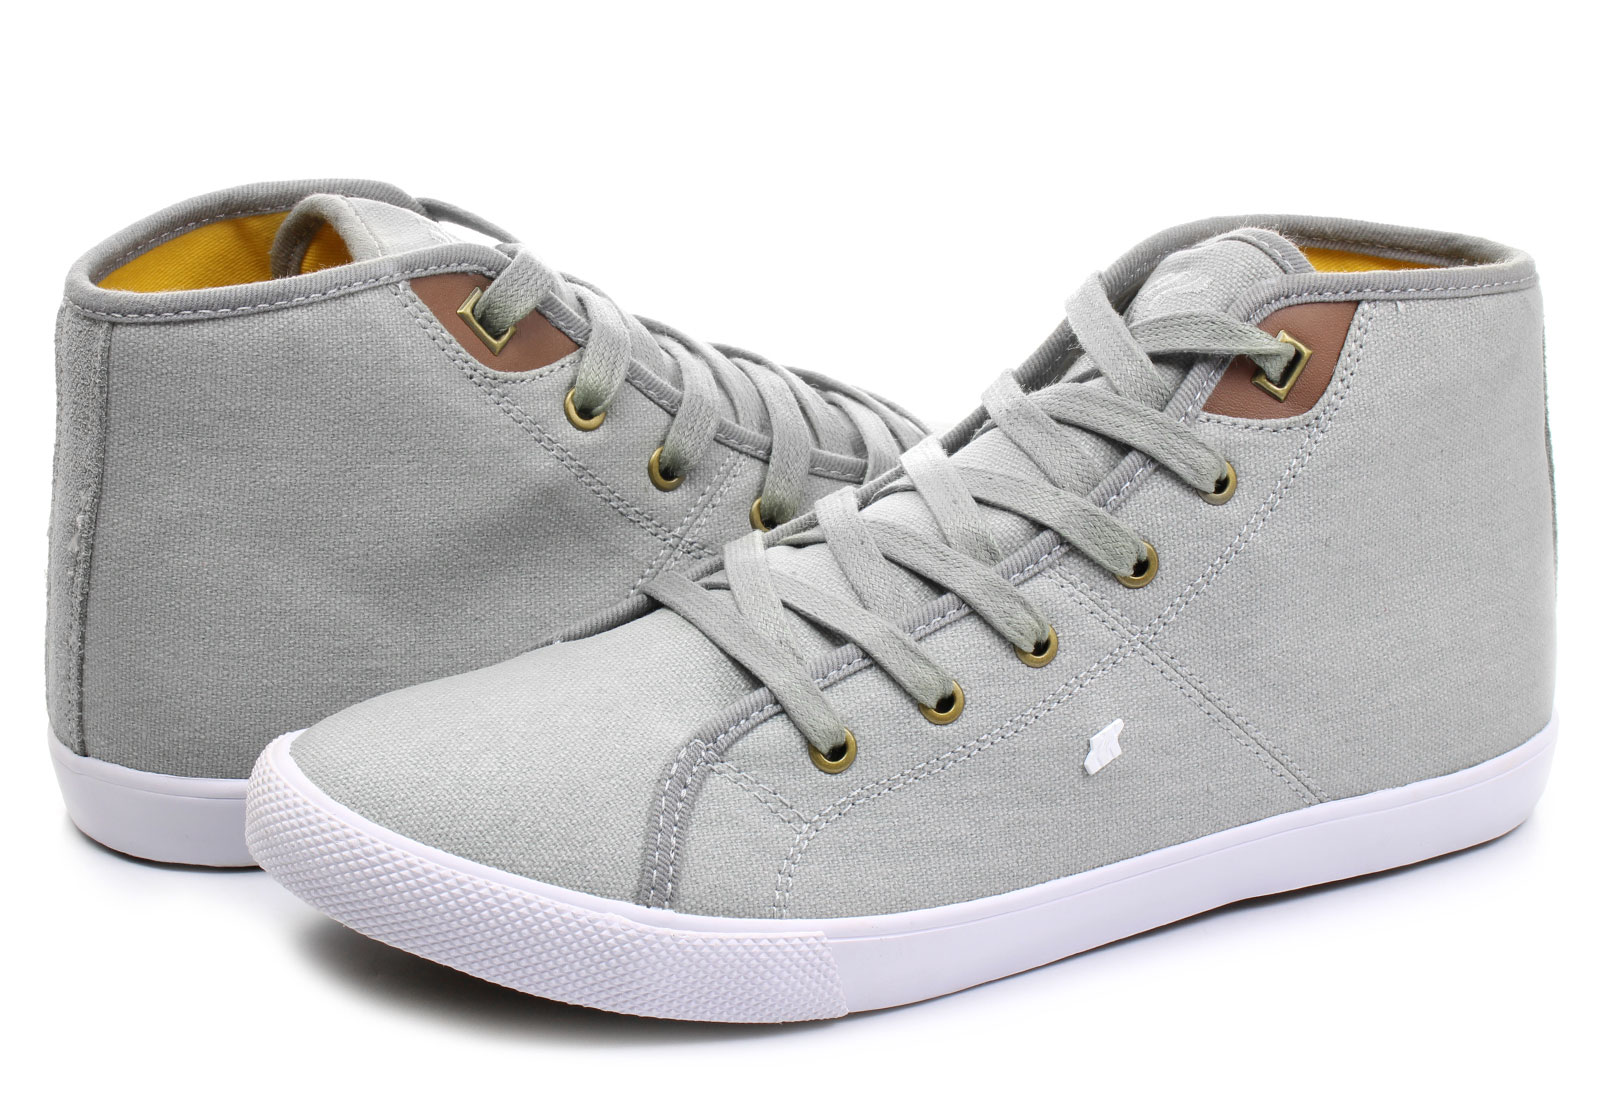 pretty nice 62f4e 369b4 Boxfresh Shoes - Archit - E14519-gry - Online shop for sneakers, shoes and  boots